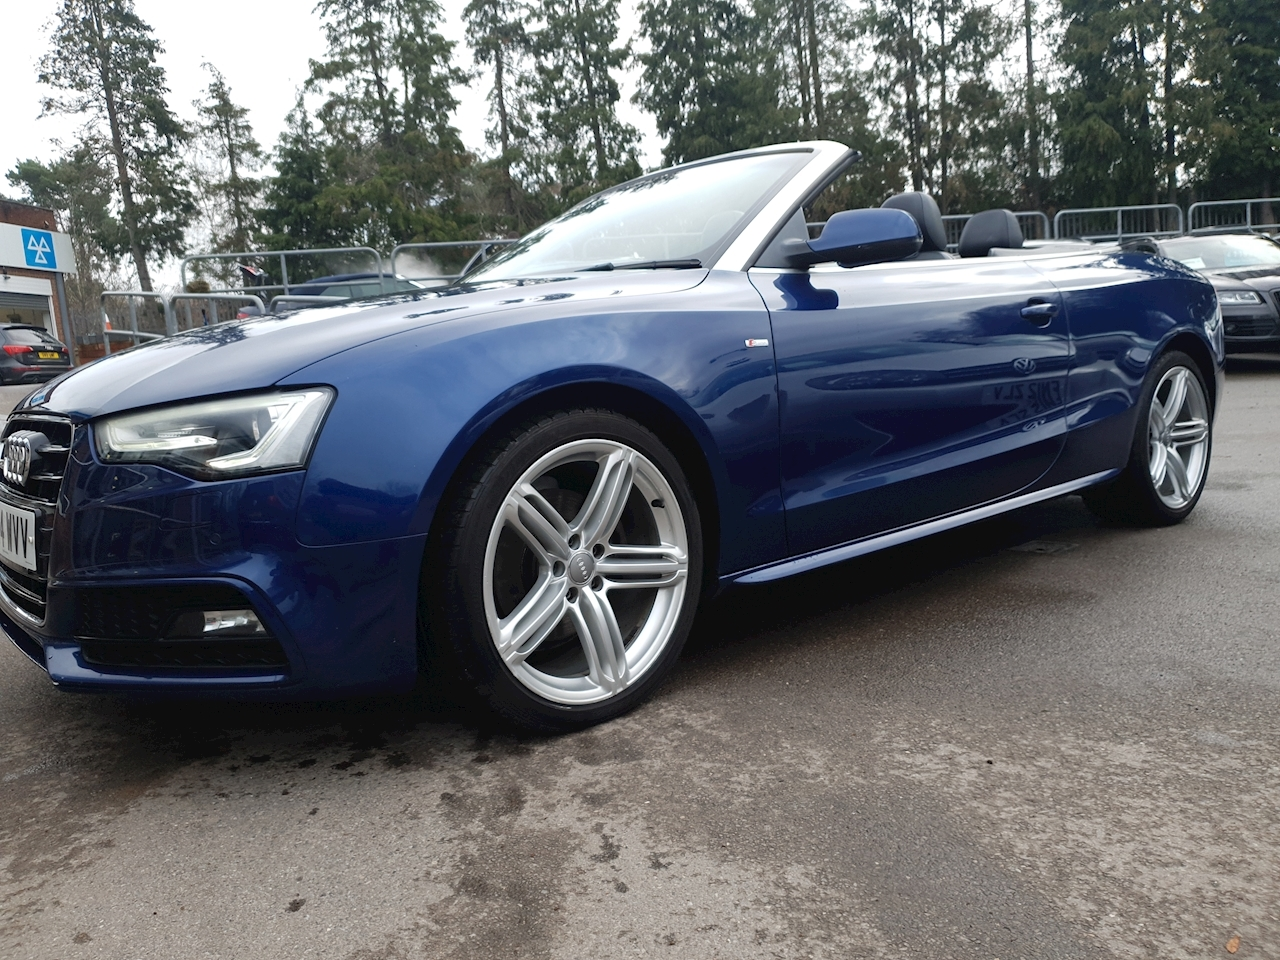 Audi 2.0 TDI S line Special Edition  (£3710 OF FACTORY OPTIONS)Cabriolet 2dr Diesel Multitronic (132 g/km, 175 bhp)